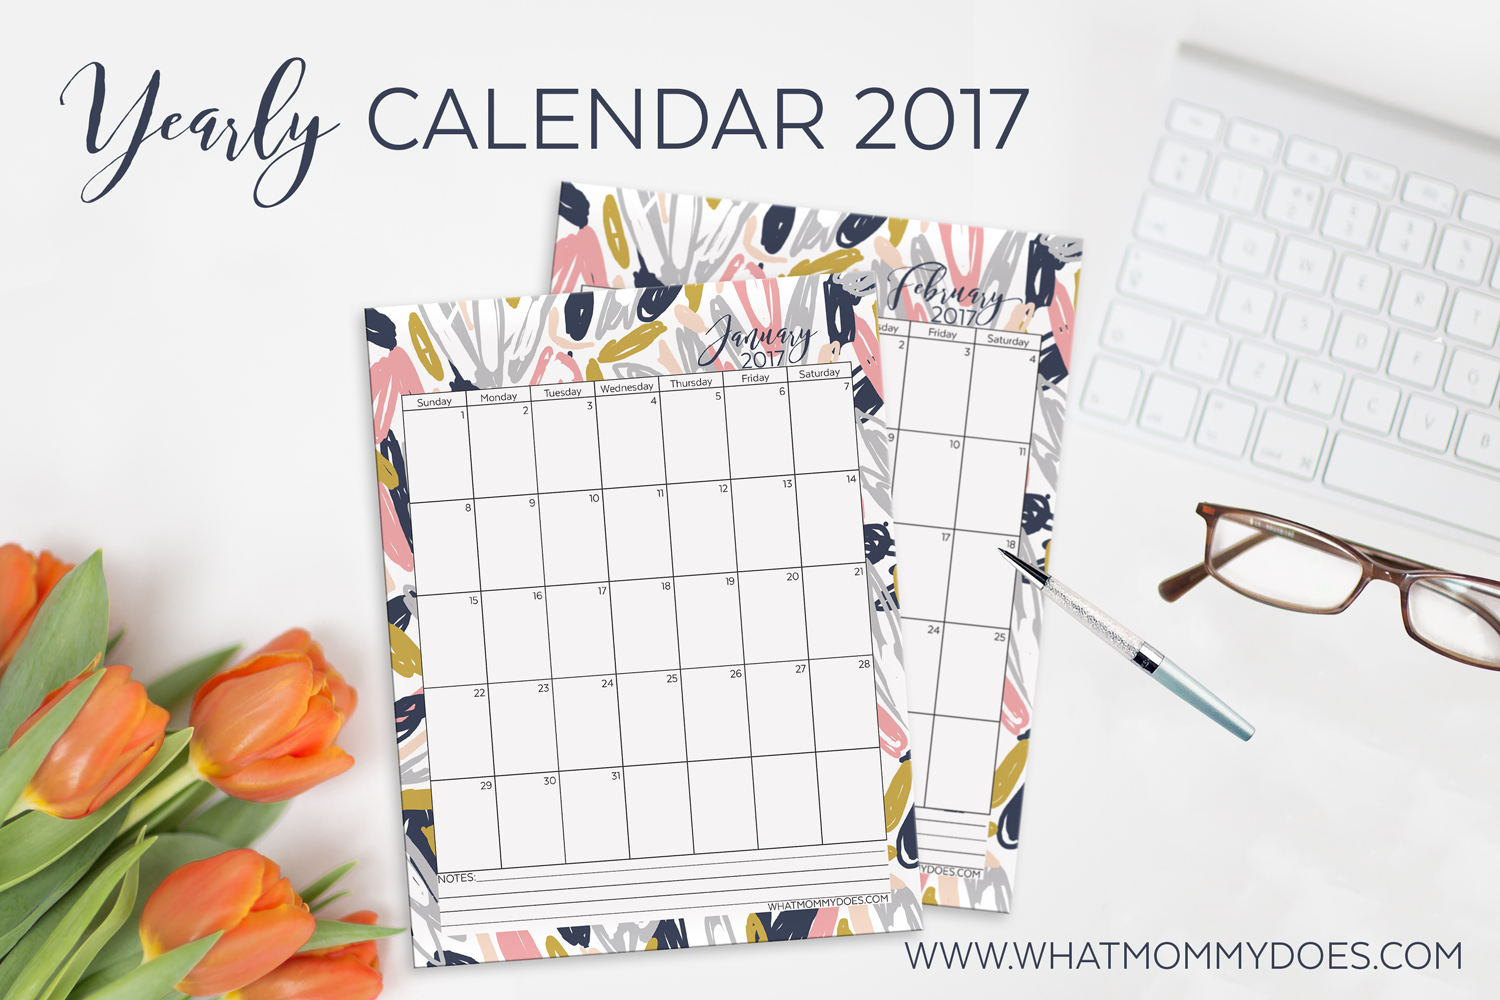 Need a full 12-month 2017 calendar? Here's one you can download & print all in one file. Opens in PDF format so you can save it to your computer. I love the pretty hues of pink, gold, and grey.